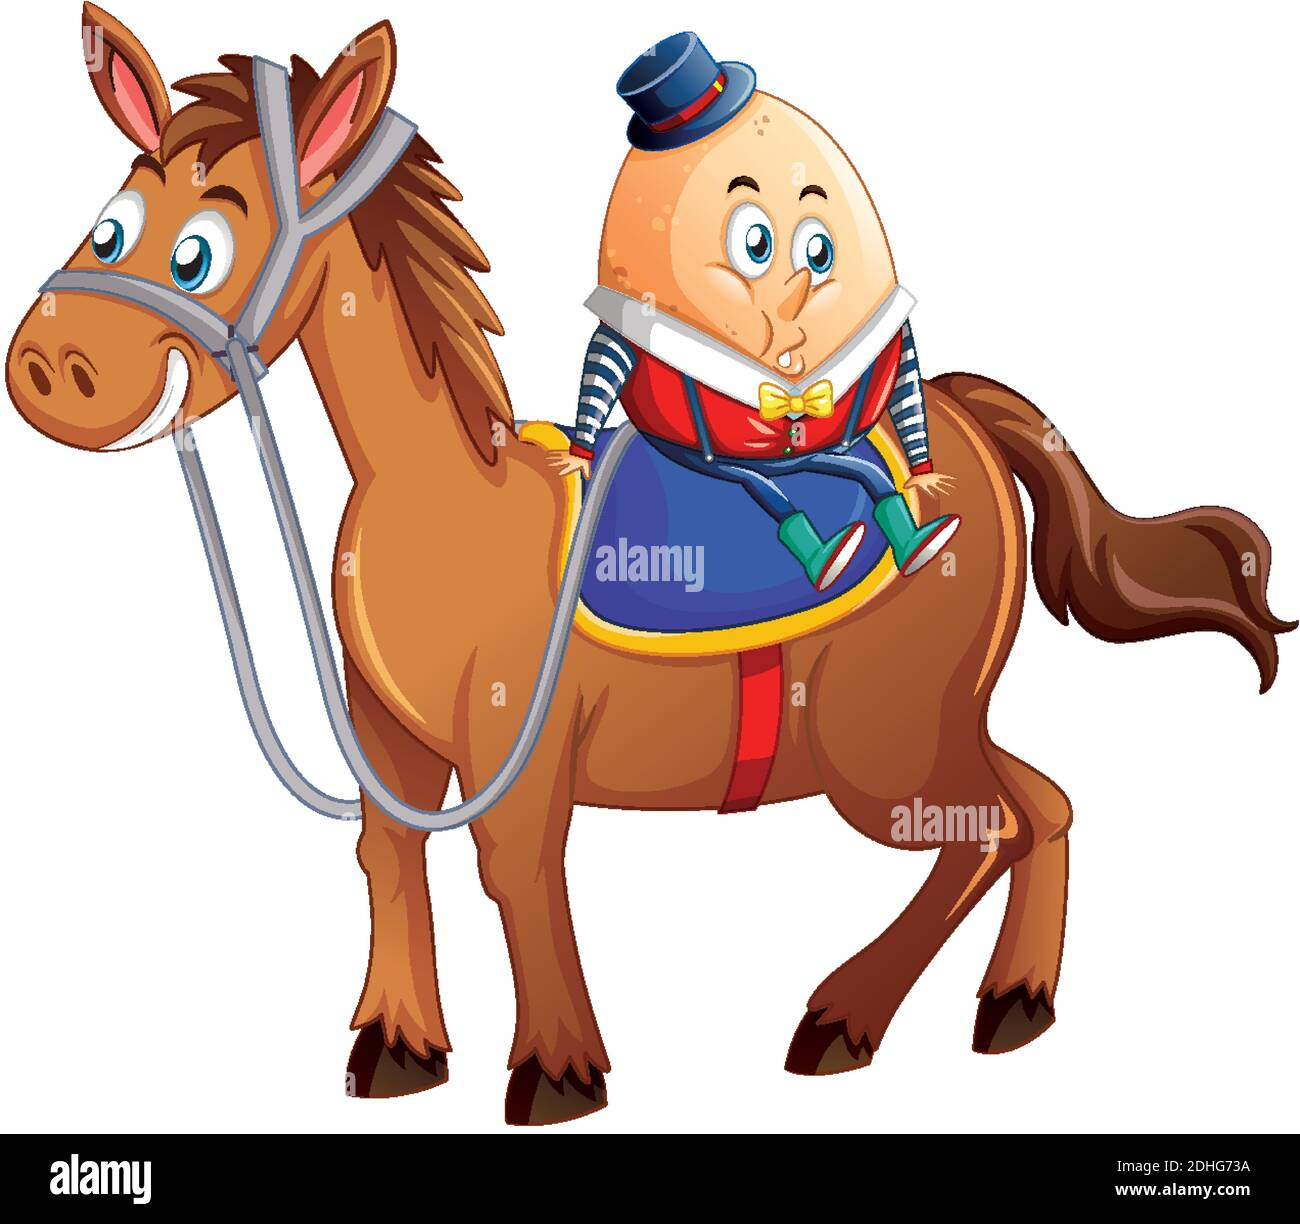 humpty dumpty egg riding a horse on white bakground illustration Stock Vector